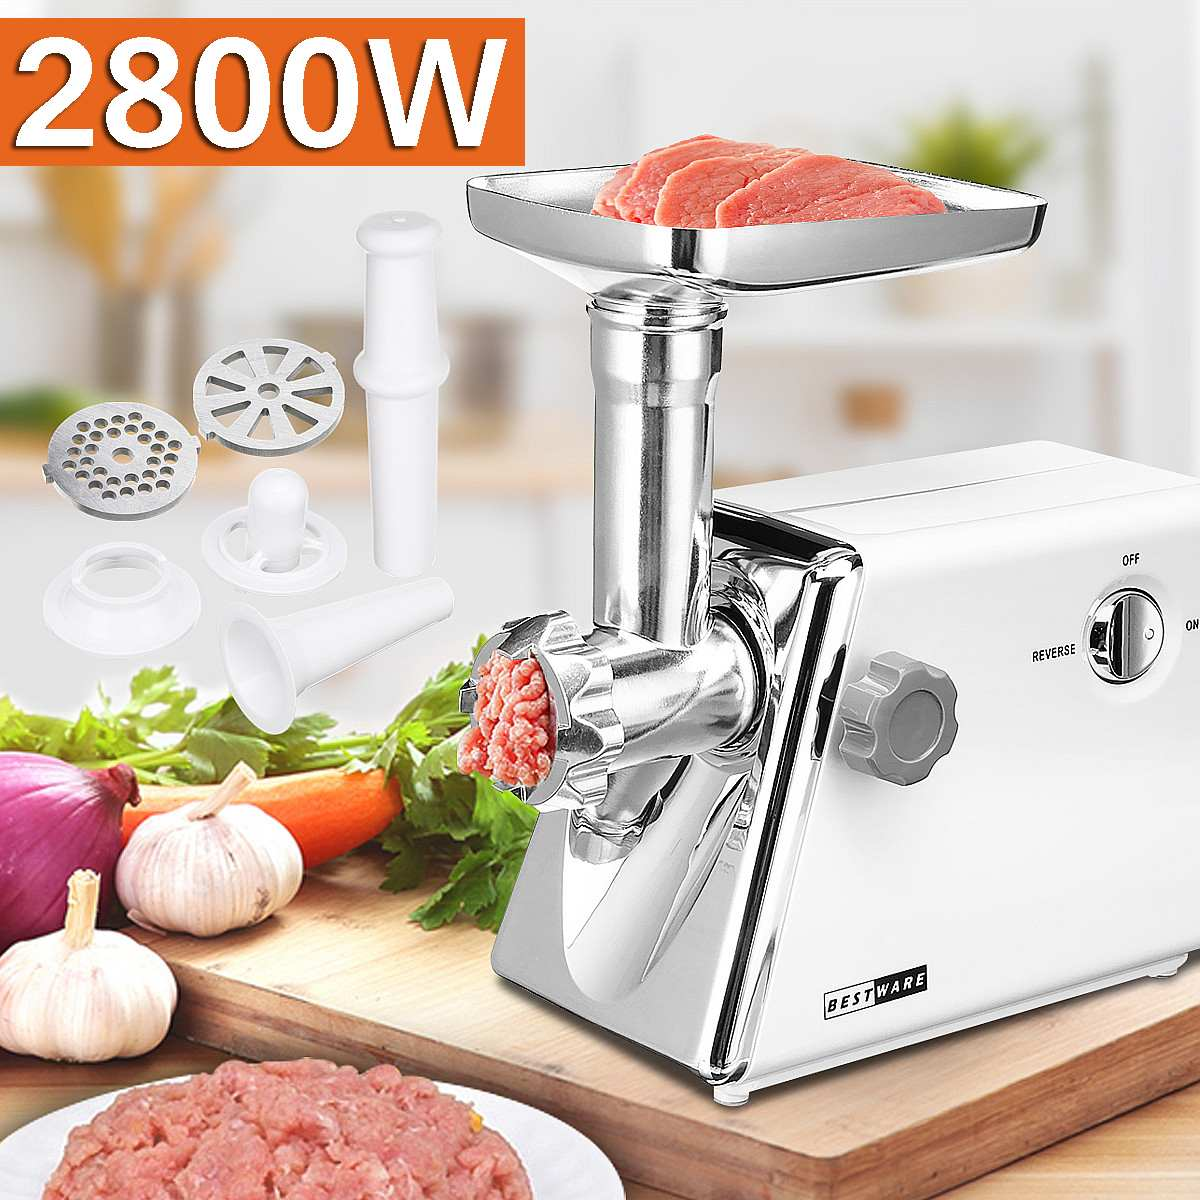 Multifunction 2800W 220V 240V Electric Meat Grinder Sausage Machine Mincer Kitchen Tool 15x34x33cm Three Grinding Plates|Meat Grinders| |  - title=